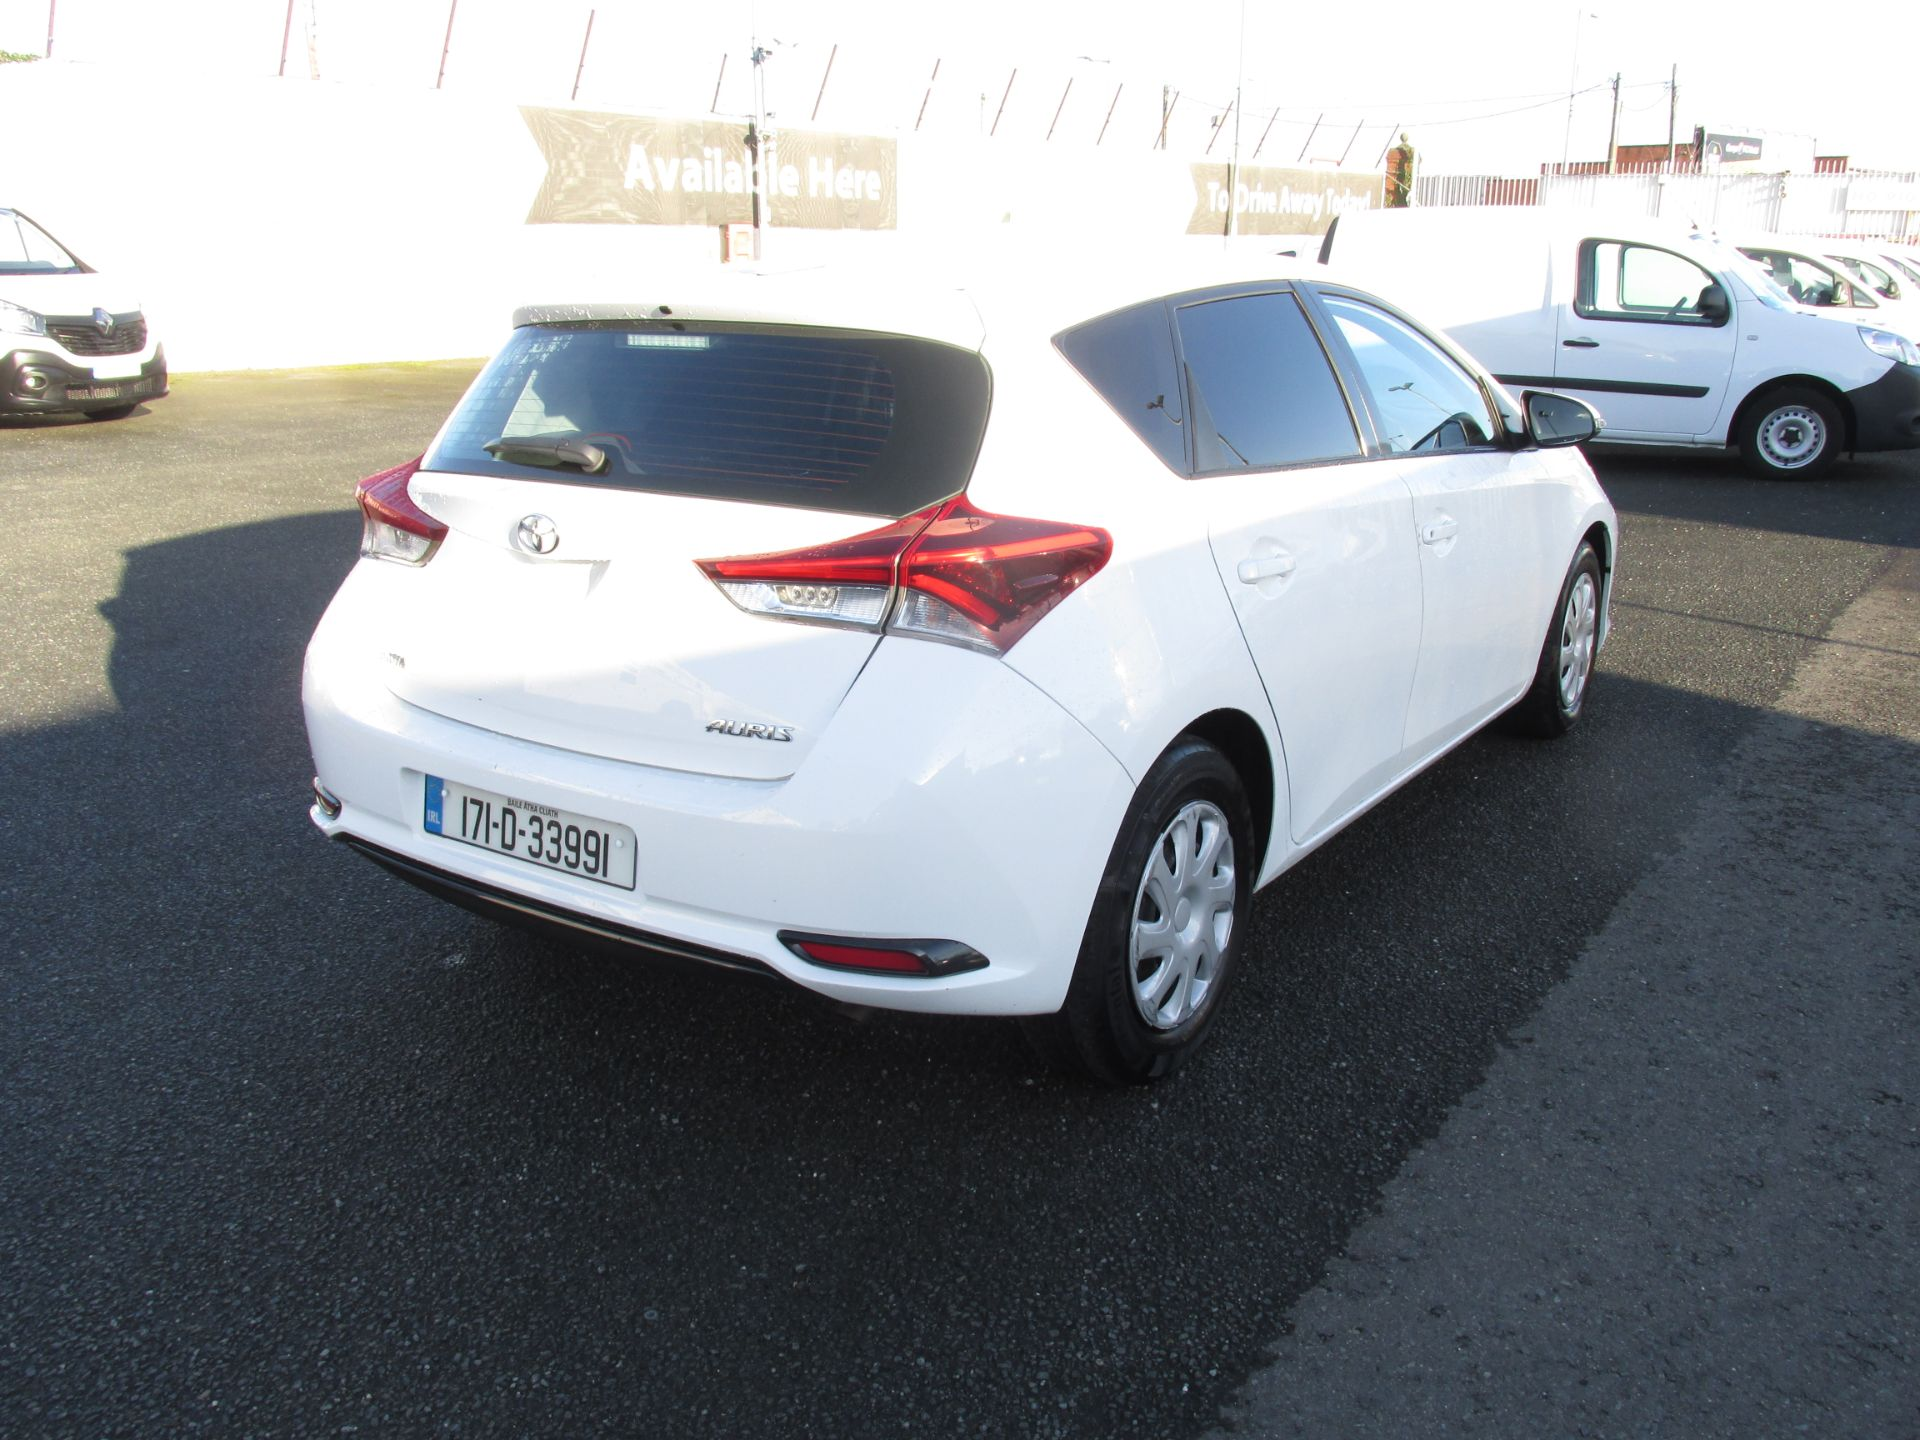 2017 Toyota Auris 1.4d-4d Terra 4DR click and collect call sales for more info (171D33991) Image 7